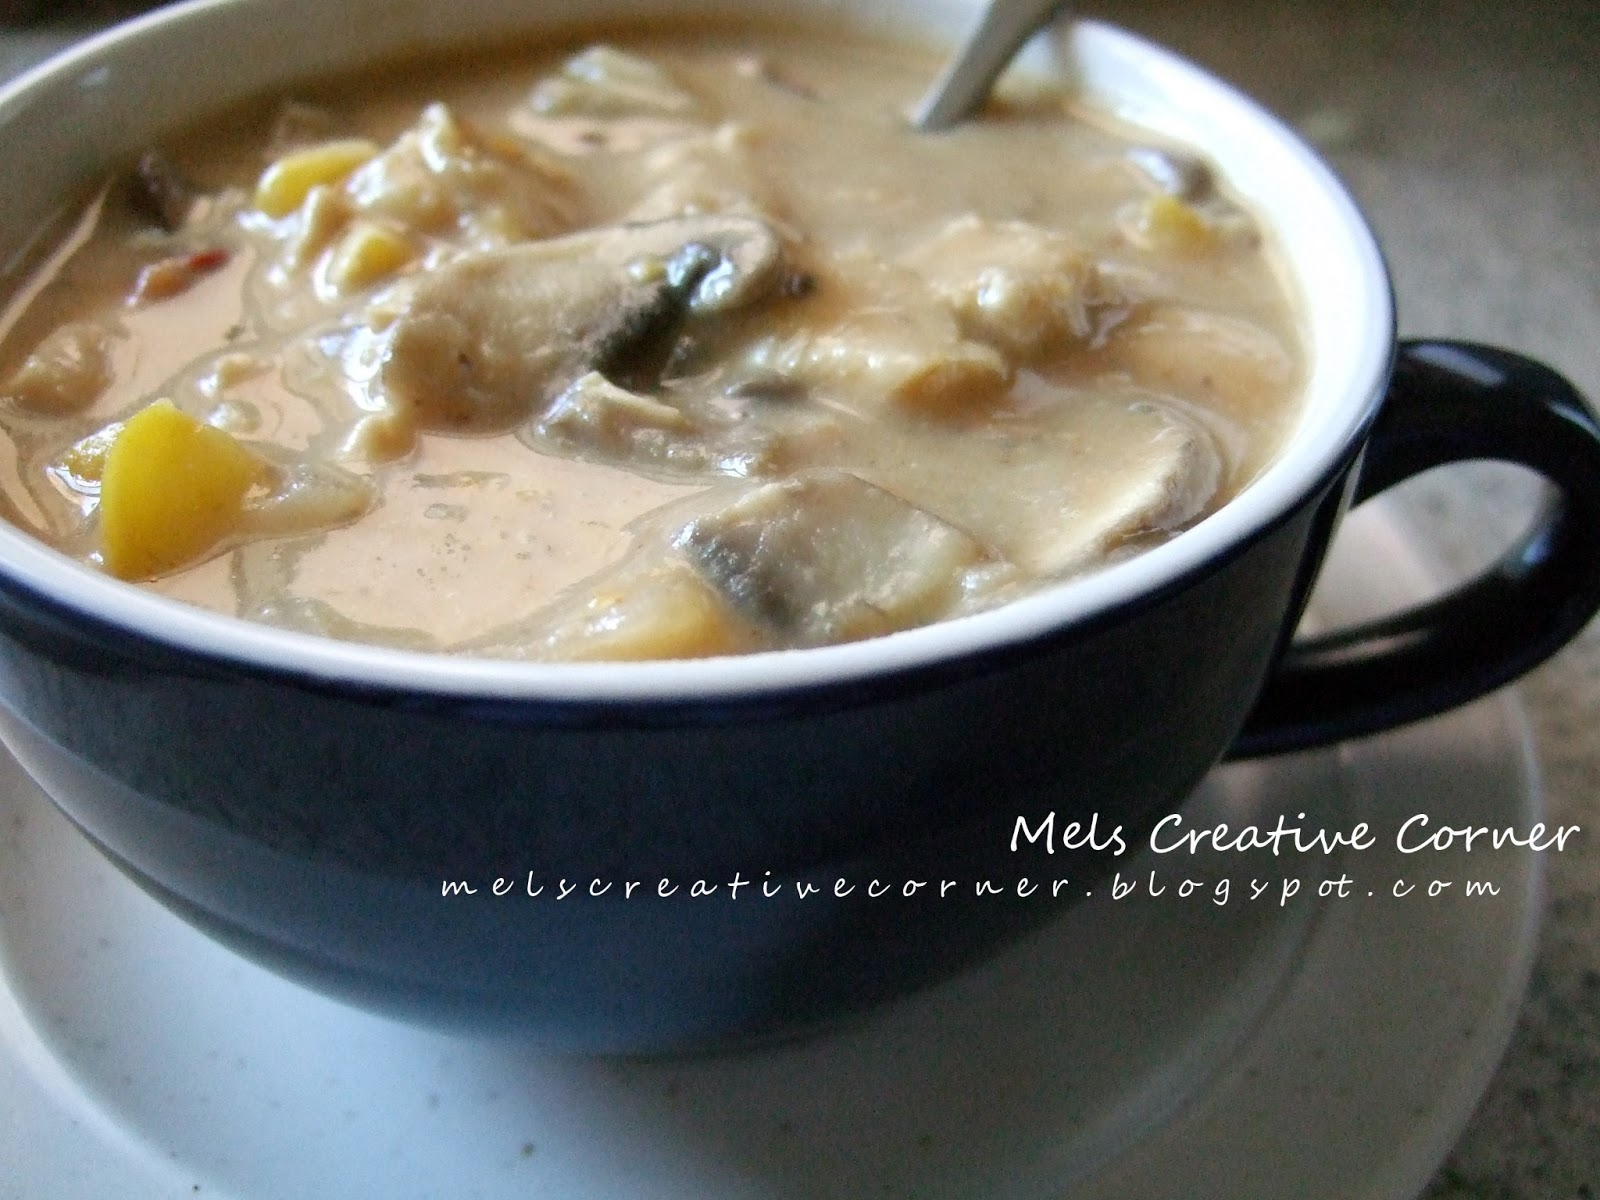 Mel's Creative Corner: Chipotle Chicken Corn & Mushroom Chowder!